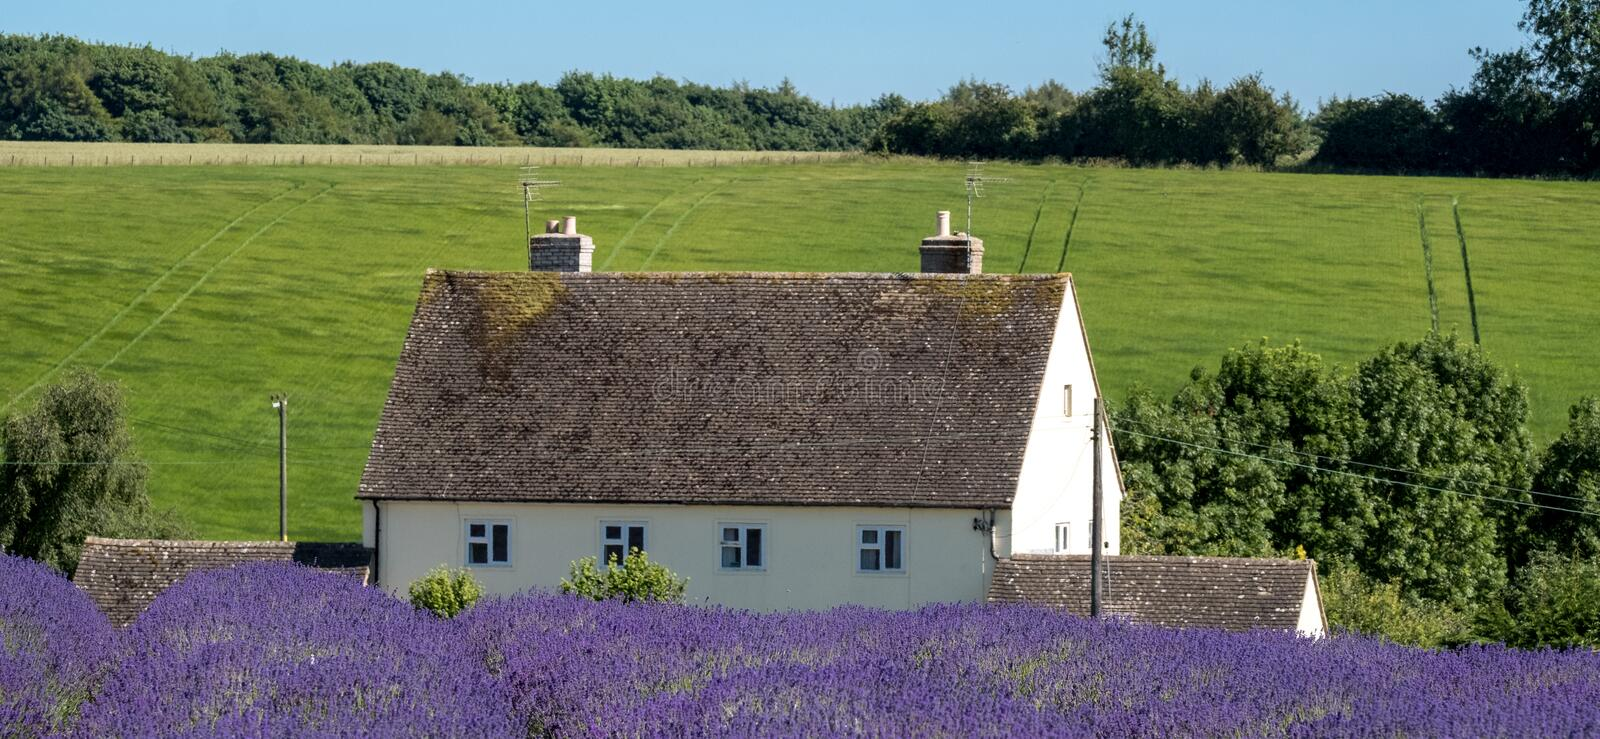 Rural English landscape with white house overlooking lavender fields on a flower farm in the Cotswolds. Green hill behind. stock photo